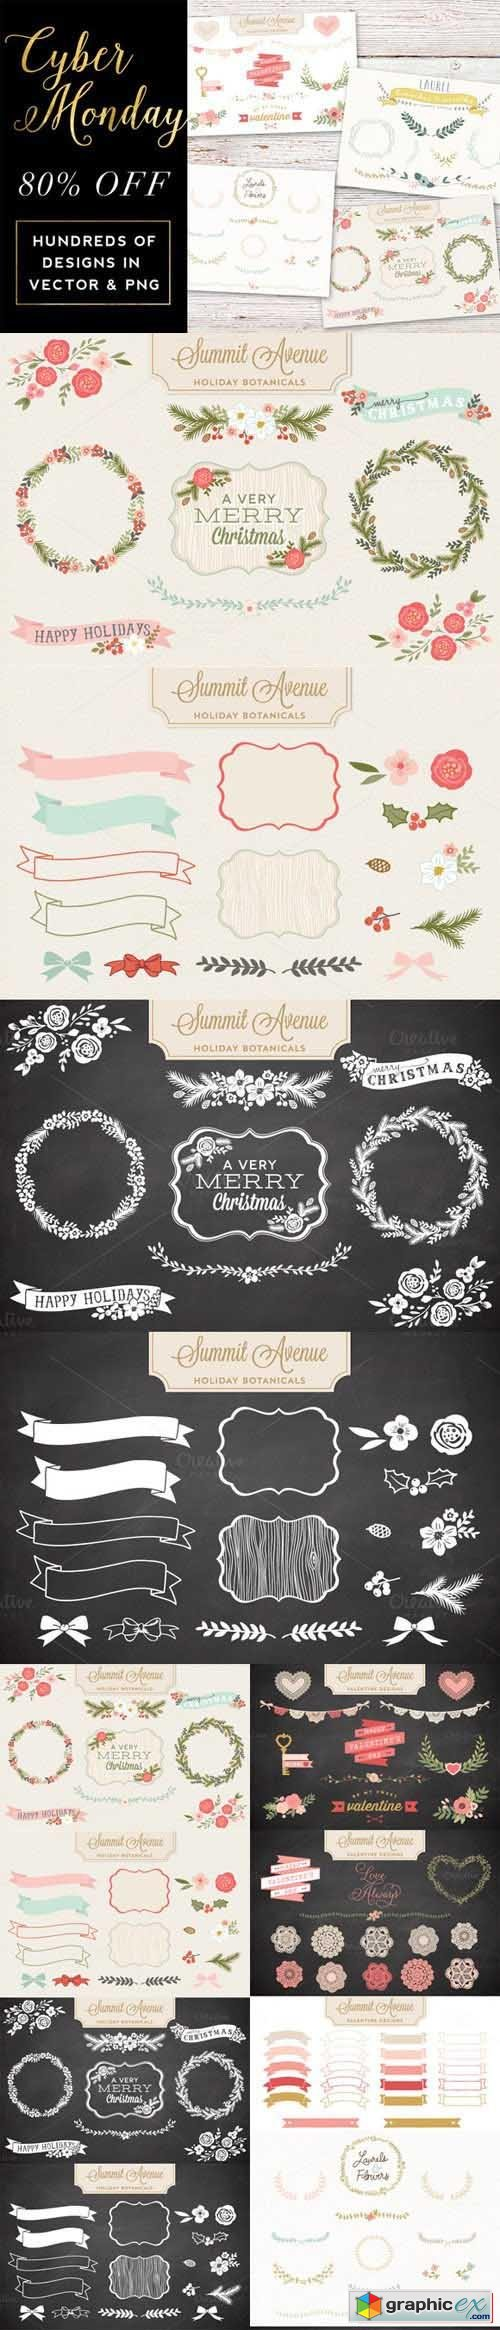 Cyber Monday Graphic Bundle